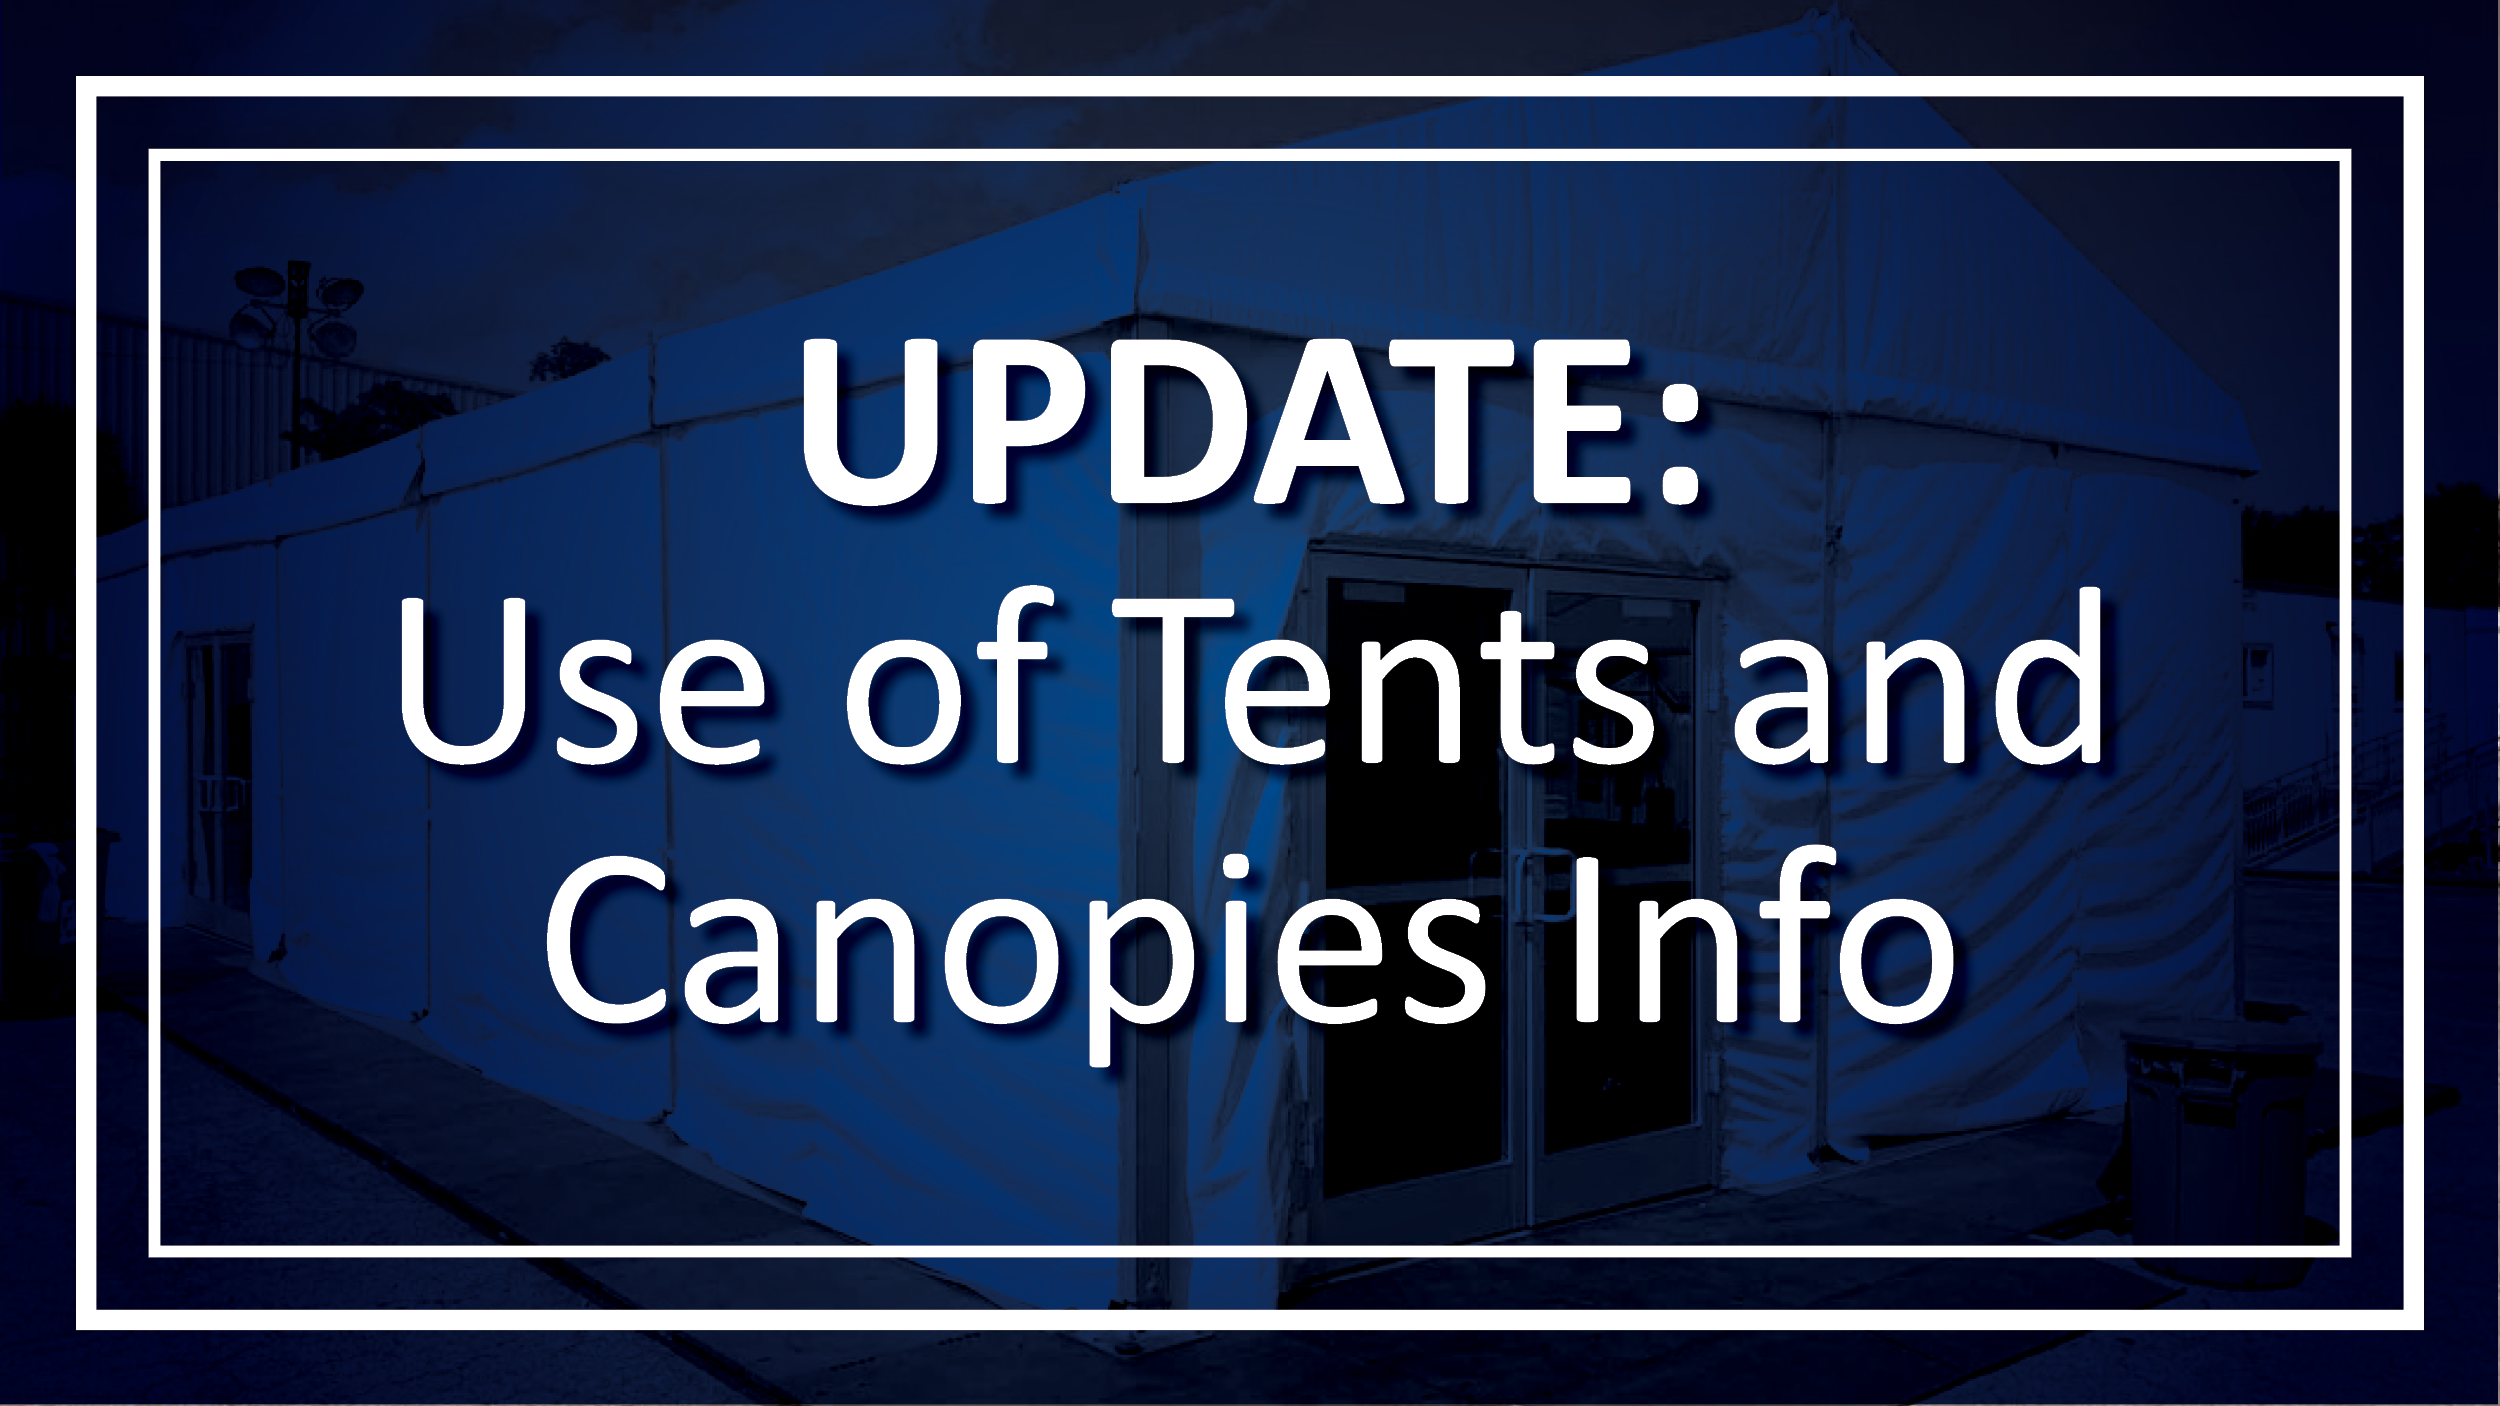 Updated Info on Use of Tents and Canopies